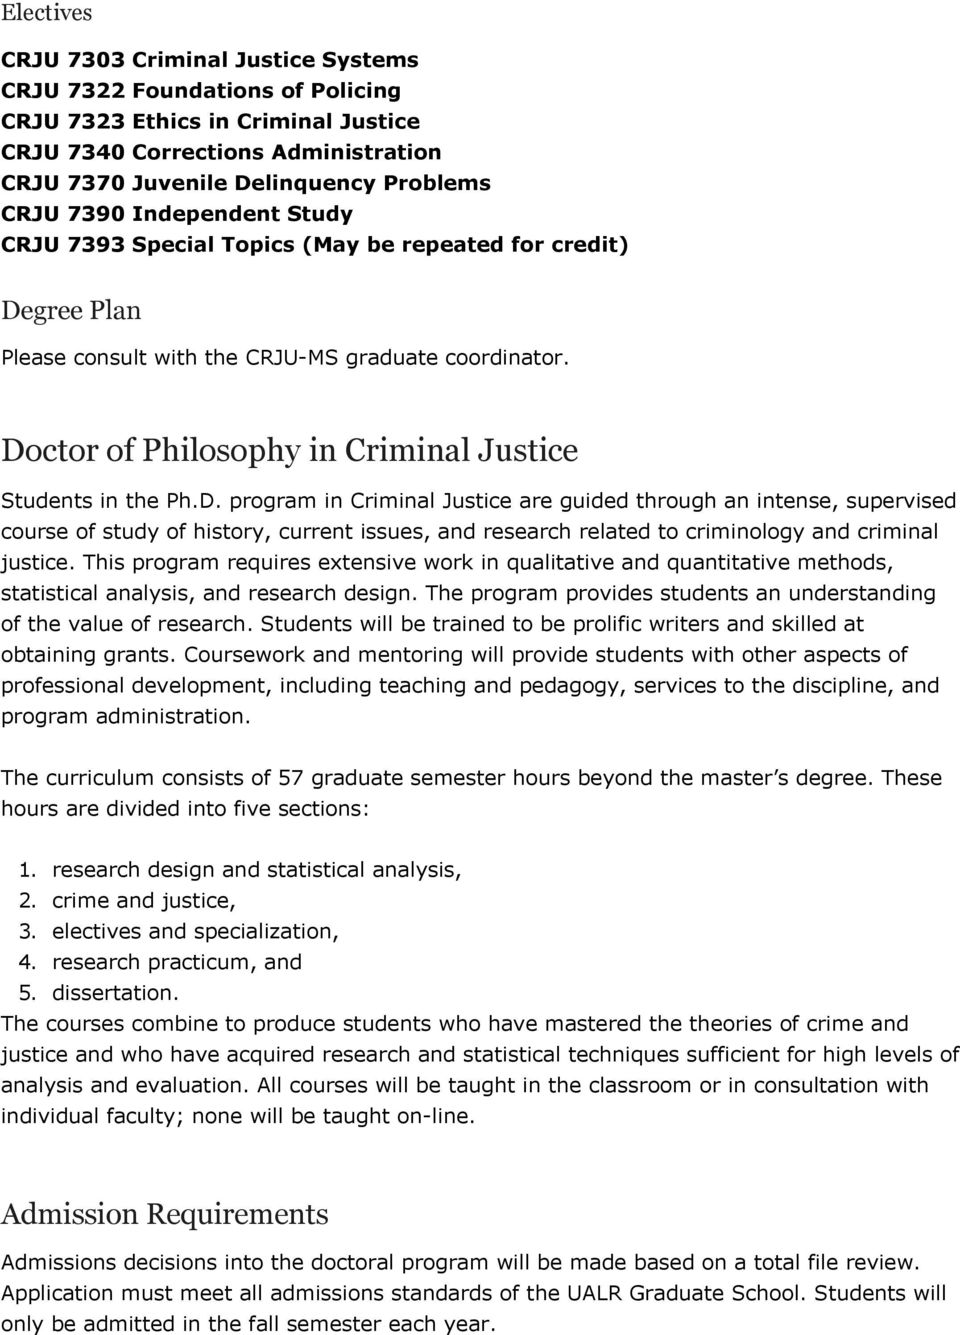 Doctor of Philosophy in Criminal Justice Students in the Ph.D. program in Criminal Justice are guided through an intense, supervised course of study of history, current issues, and research related to criminology and criminal justice.